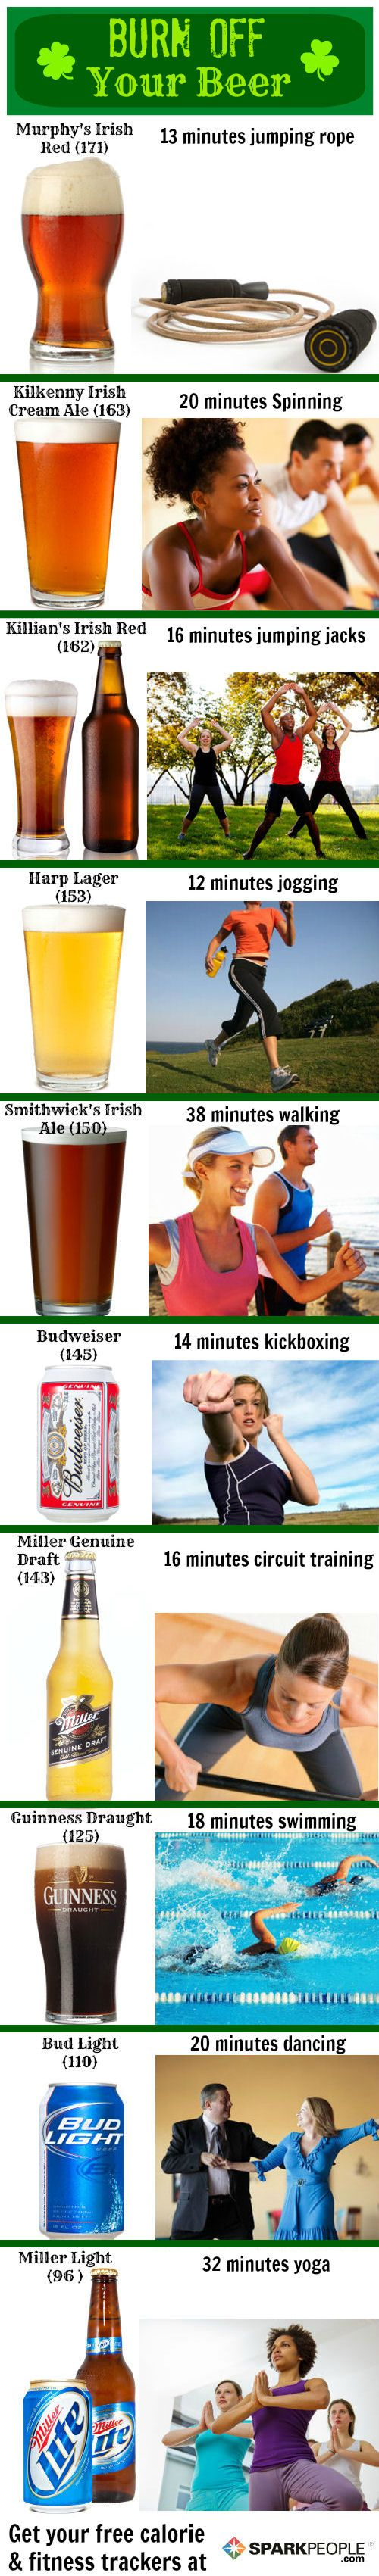 Infographic: How to burn off your St. Patrick's Day beer